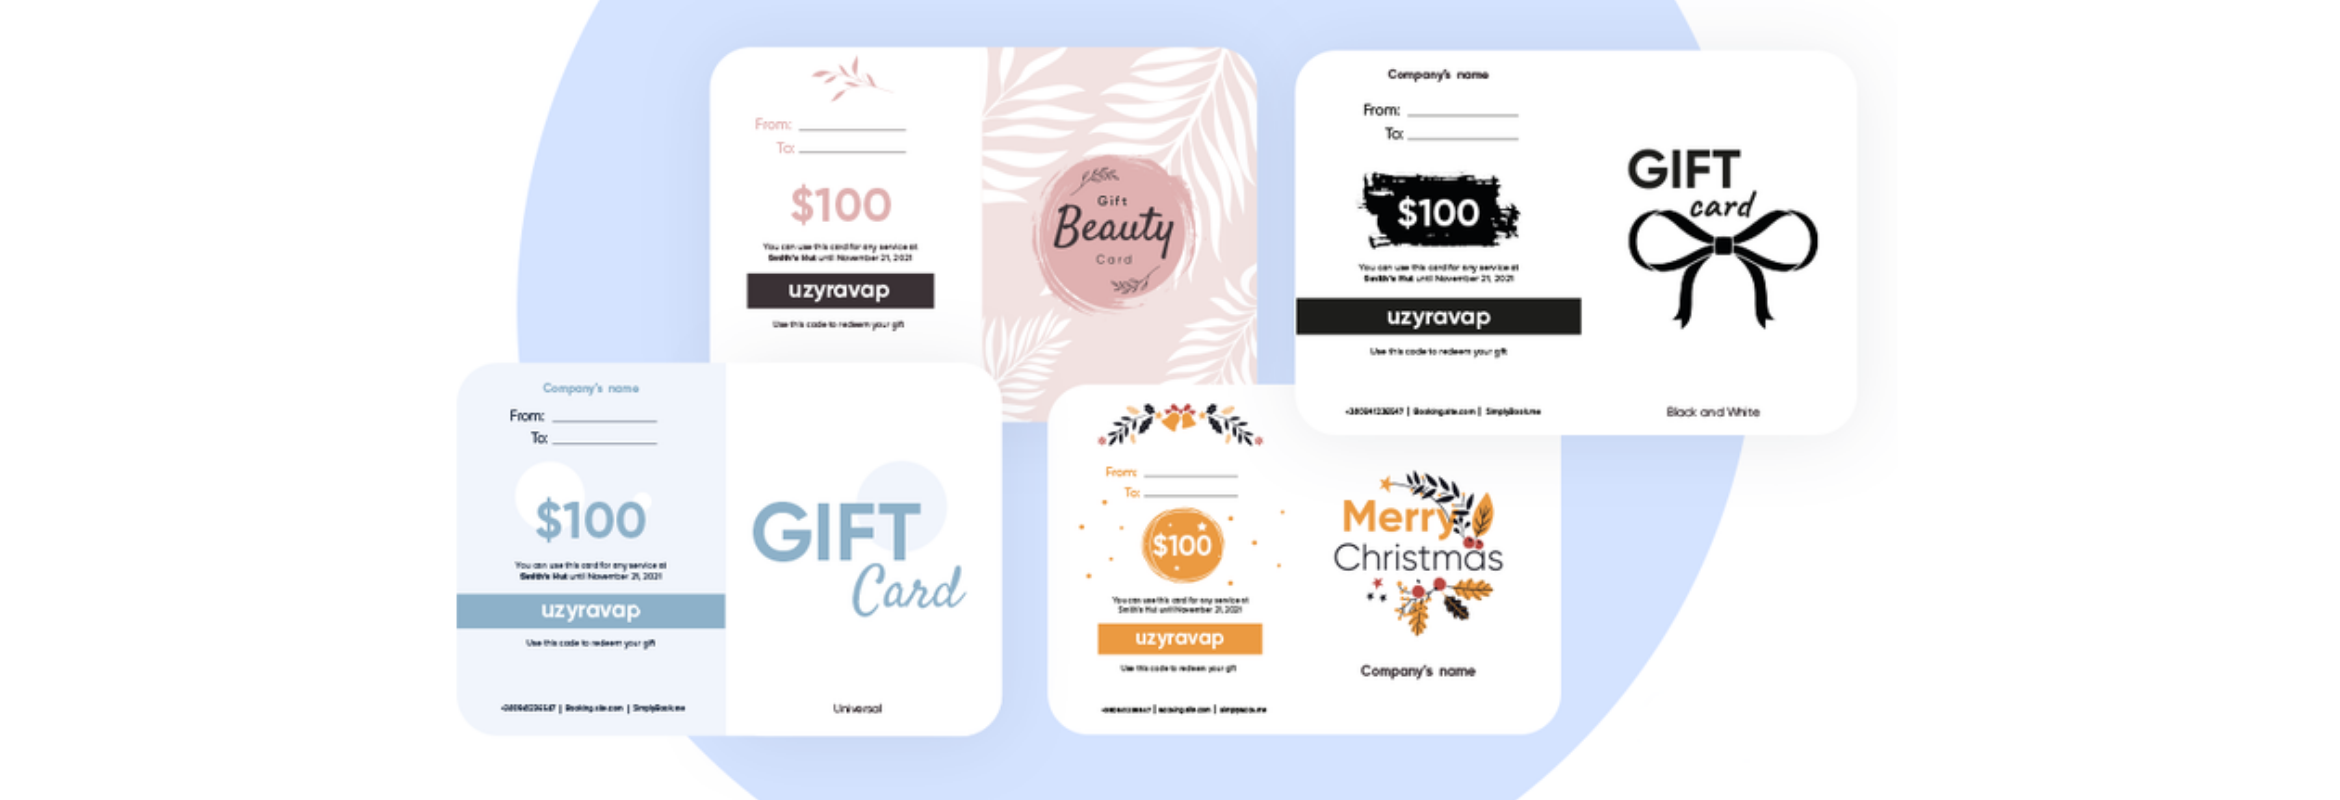 new gift card designs